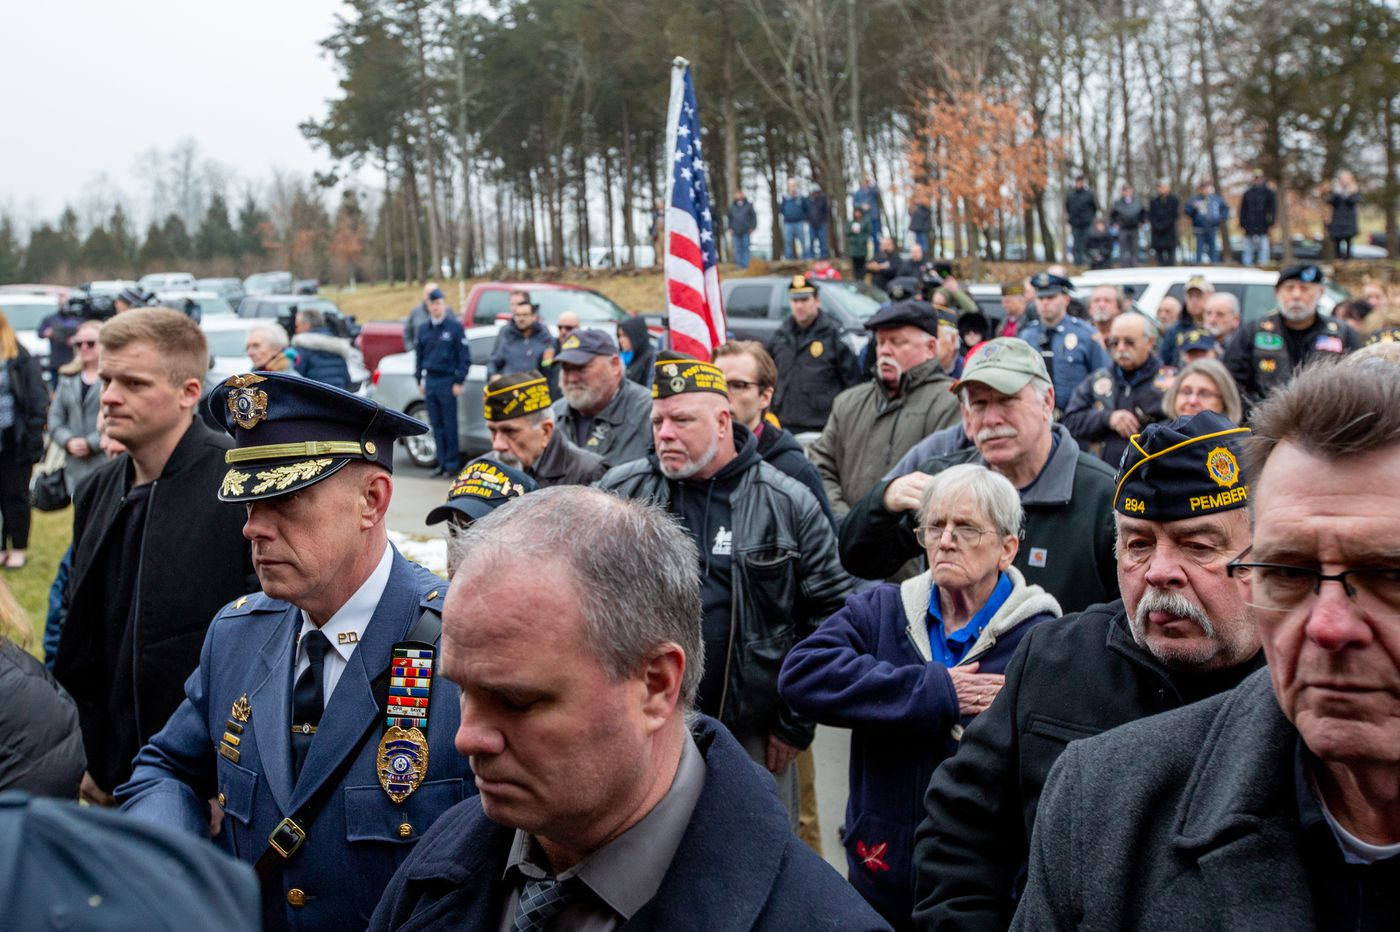 'I didn't want him to be buried alone' -- More than 1,000 people attend funeral for Vietnam veteran